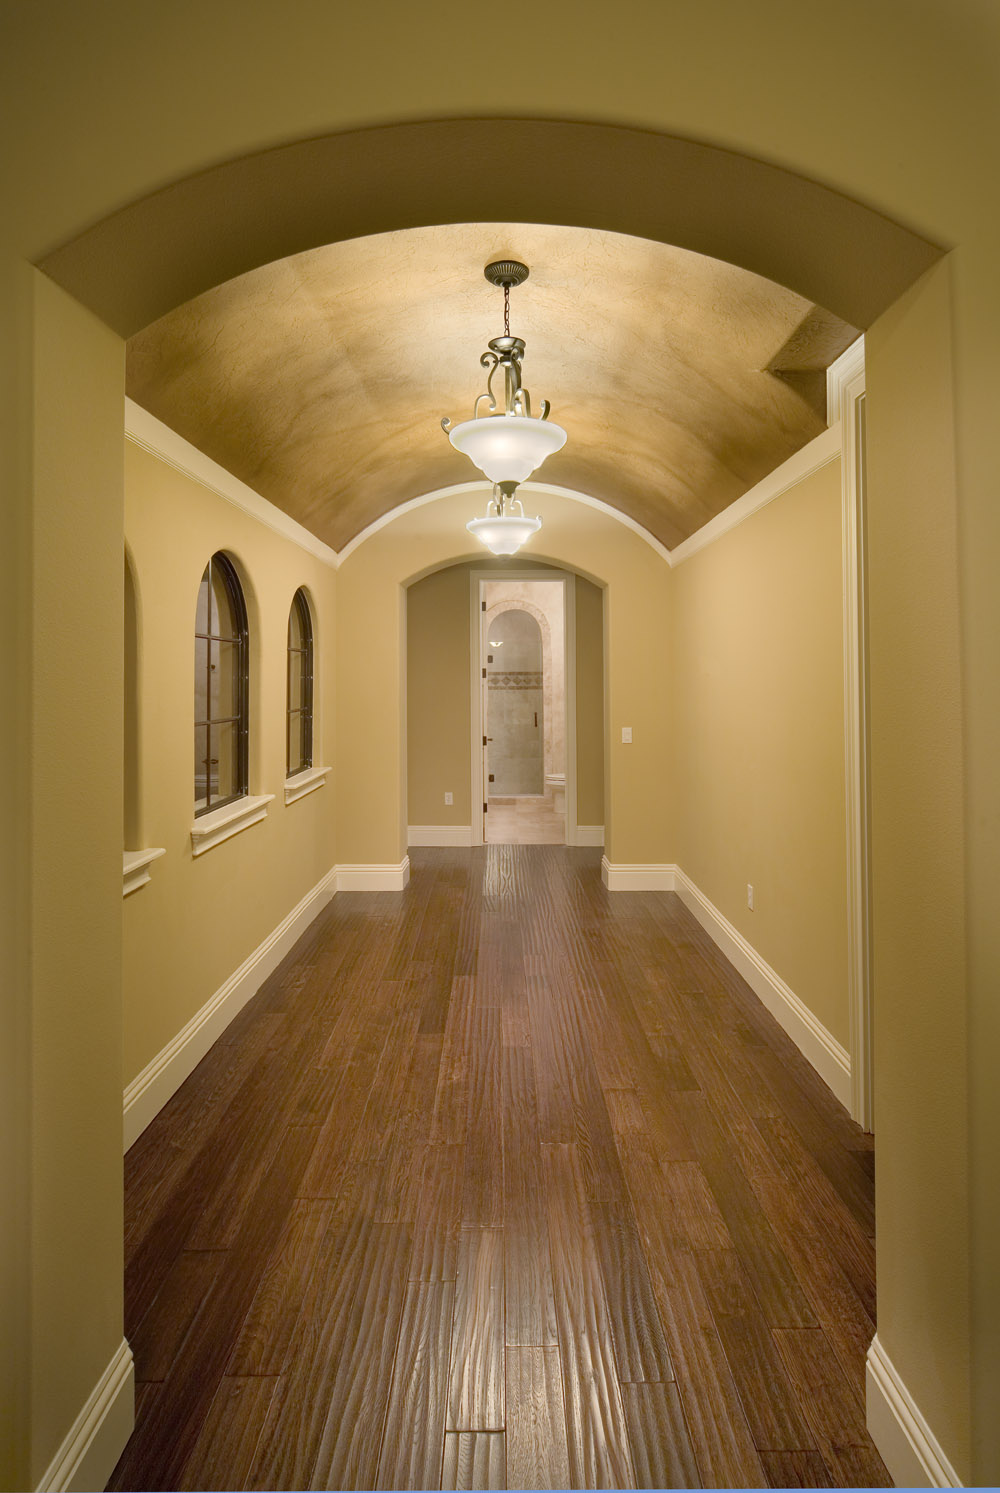 Barrel Ceilings That Raise Eyebrows : Trade Secrets by Jorge